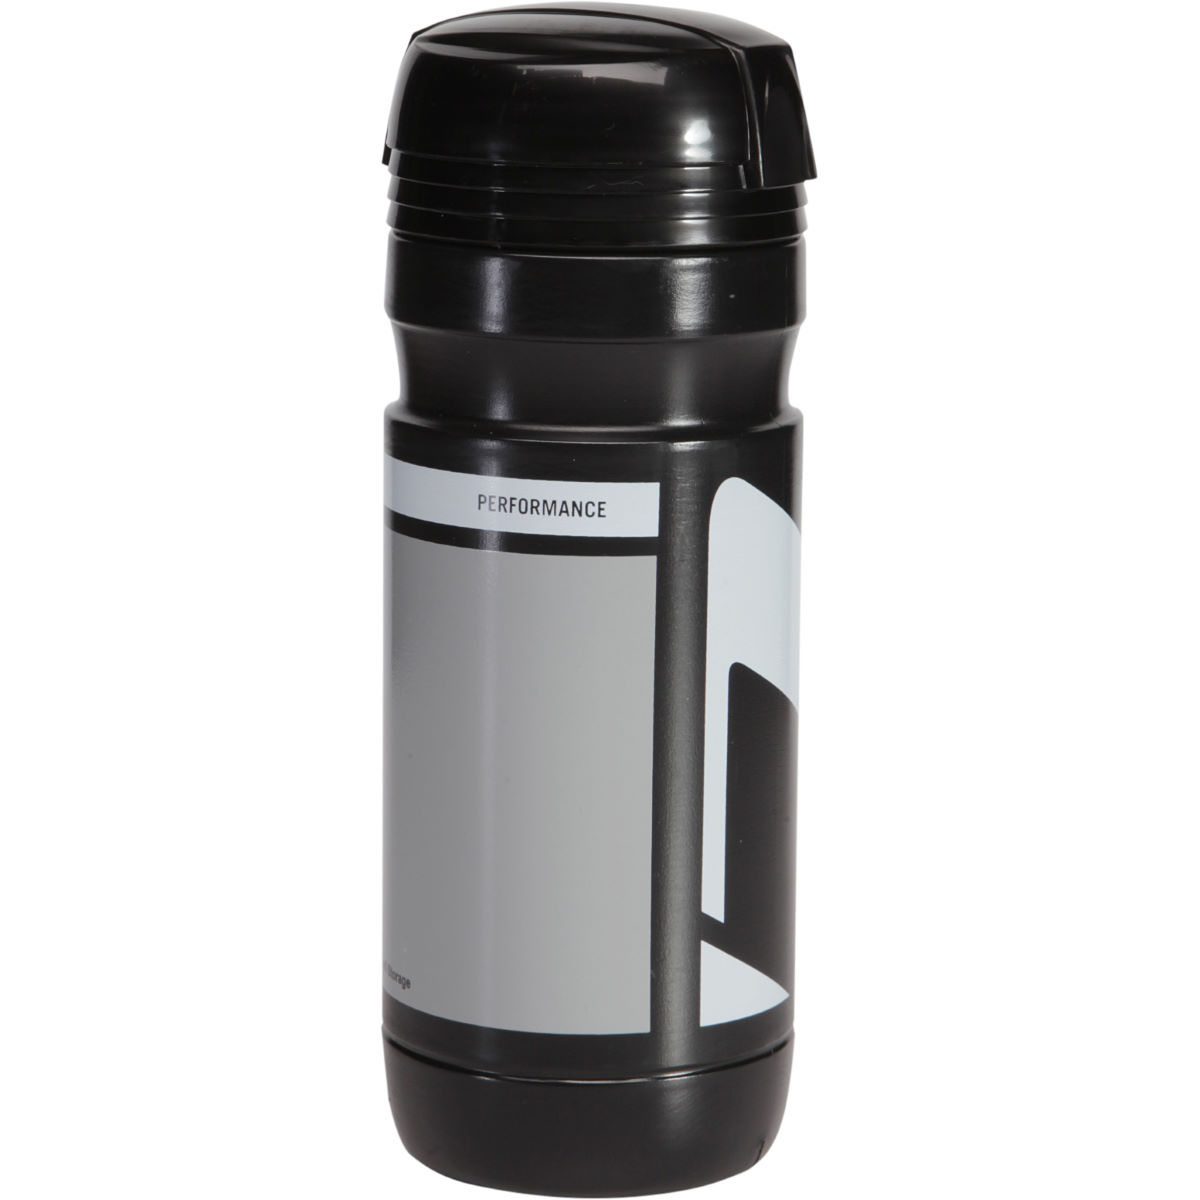 LifeLine Storage Tool Bottle - Small